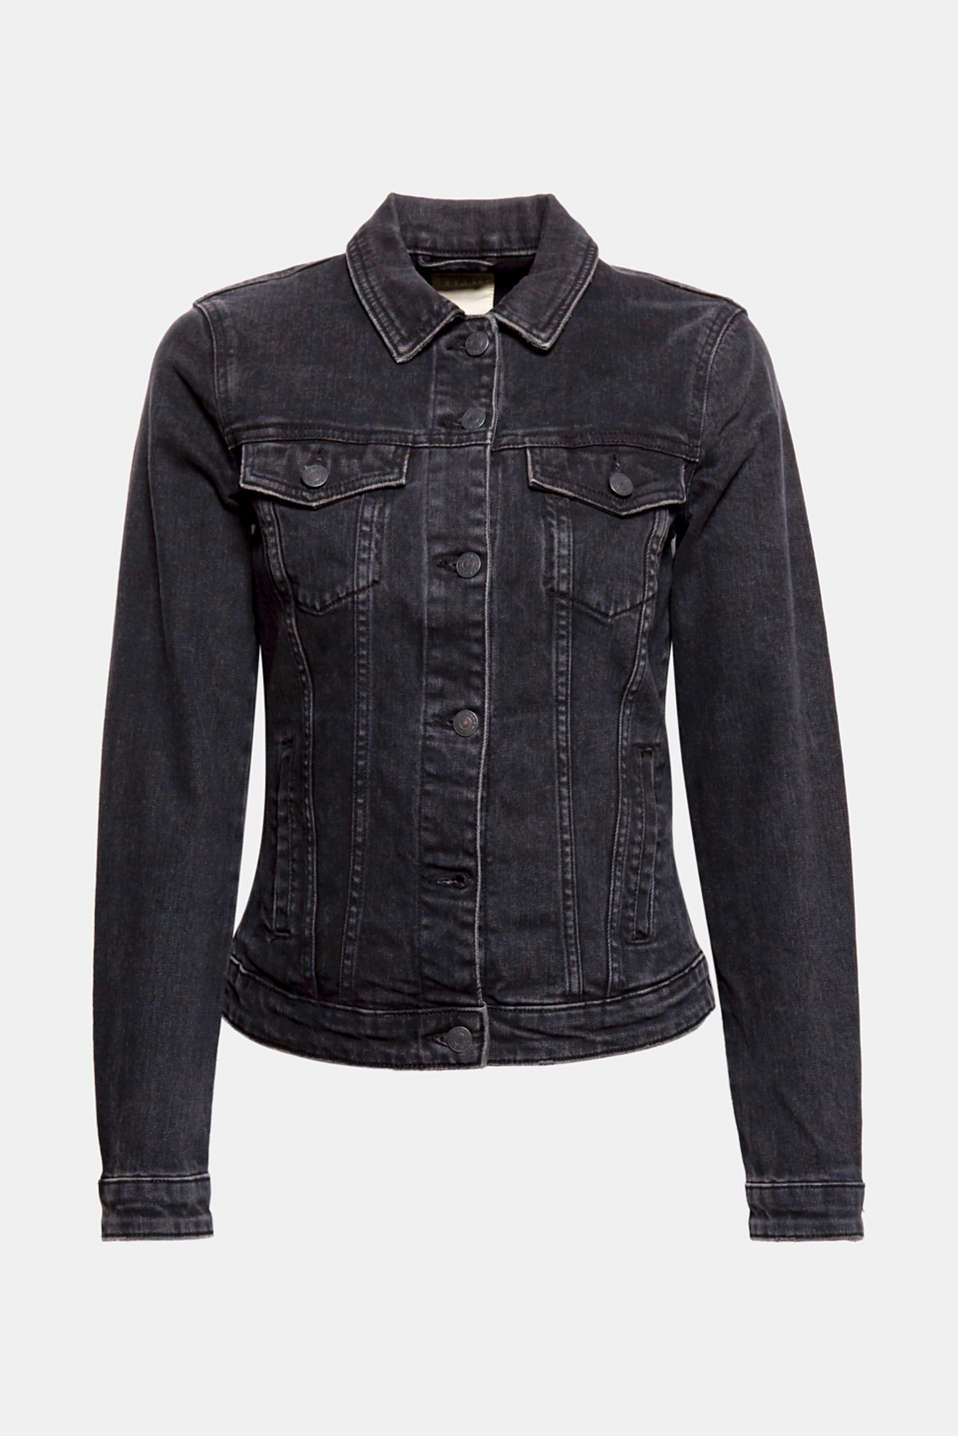 Black is beautiful – also on this fitted denim jacket with subtle vintage effects and added stretch for comfort!